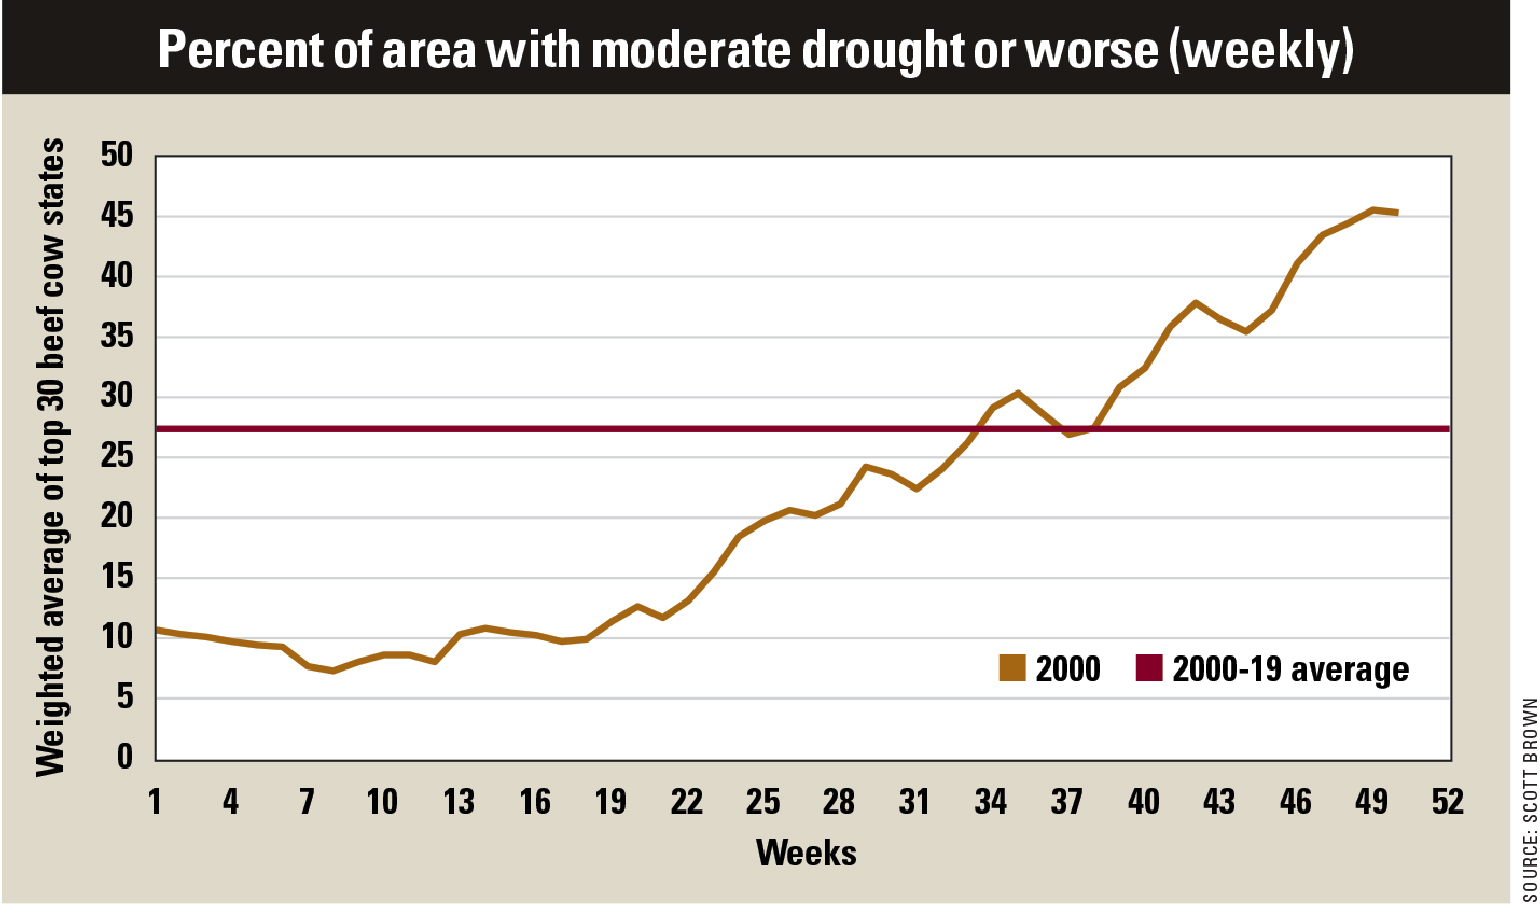 Percent of area with moderate drought or worse chart